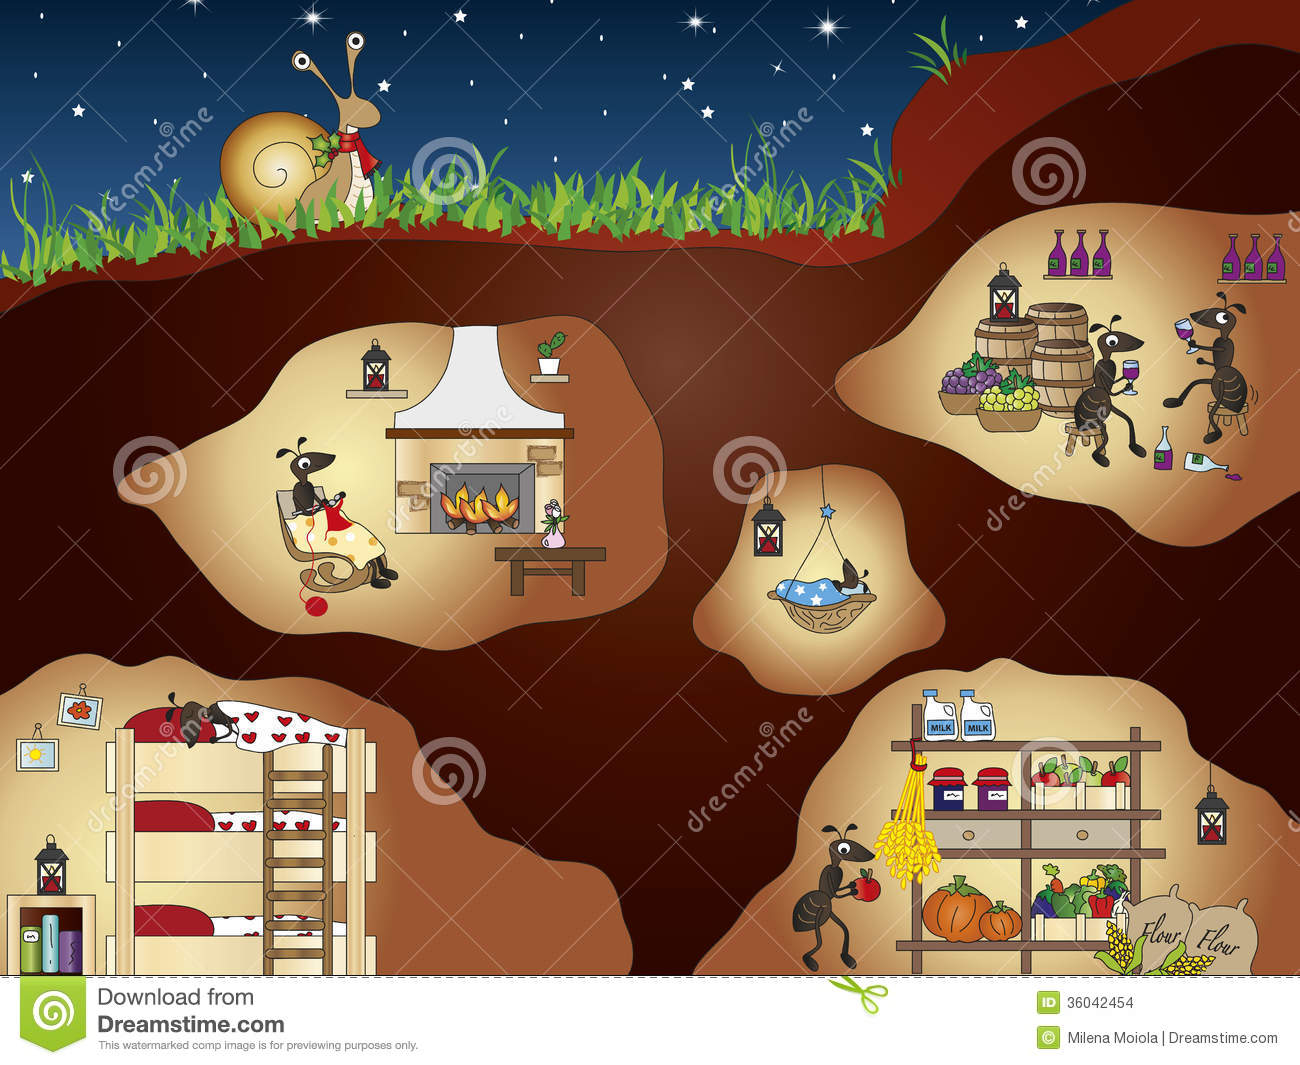 Ants clipart underground. Ant house pencil and